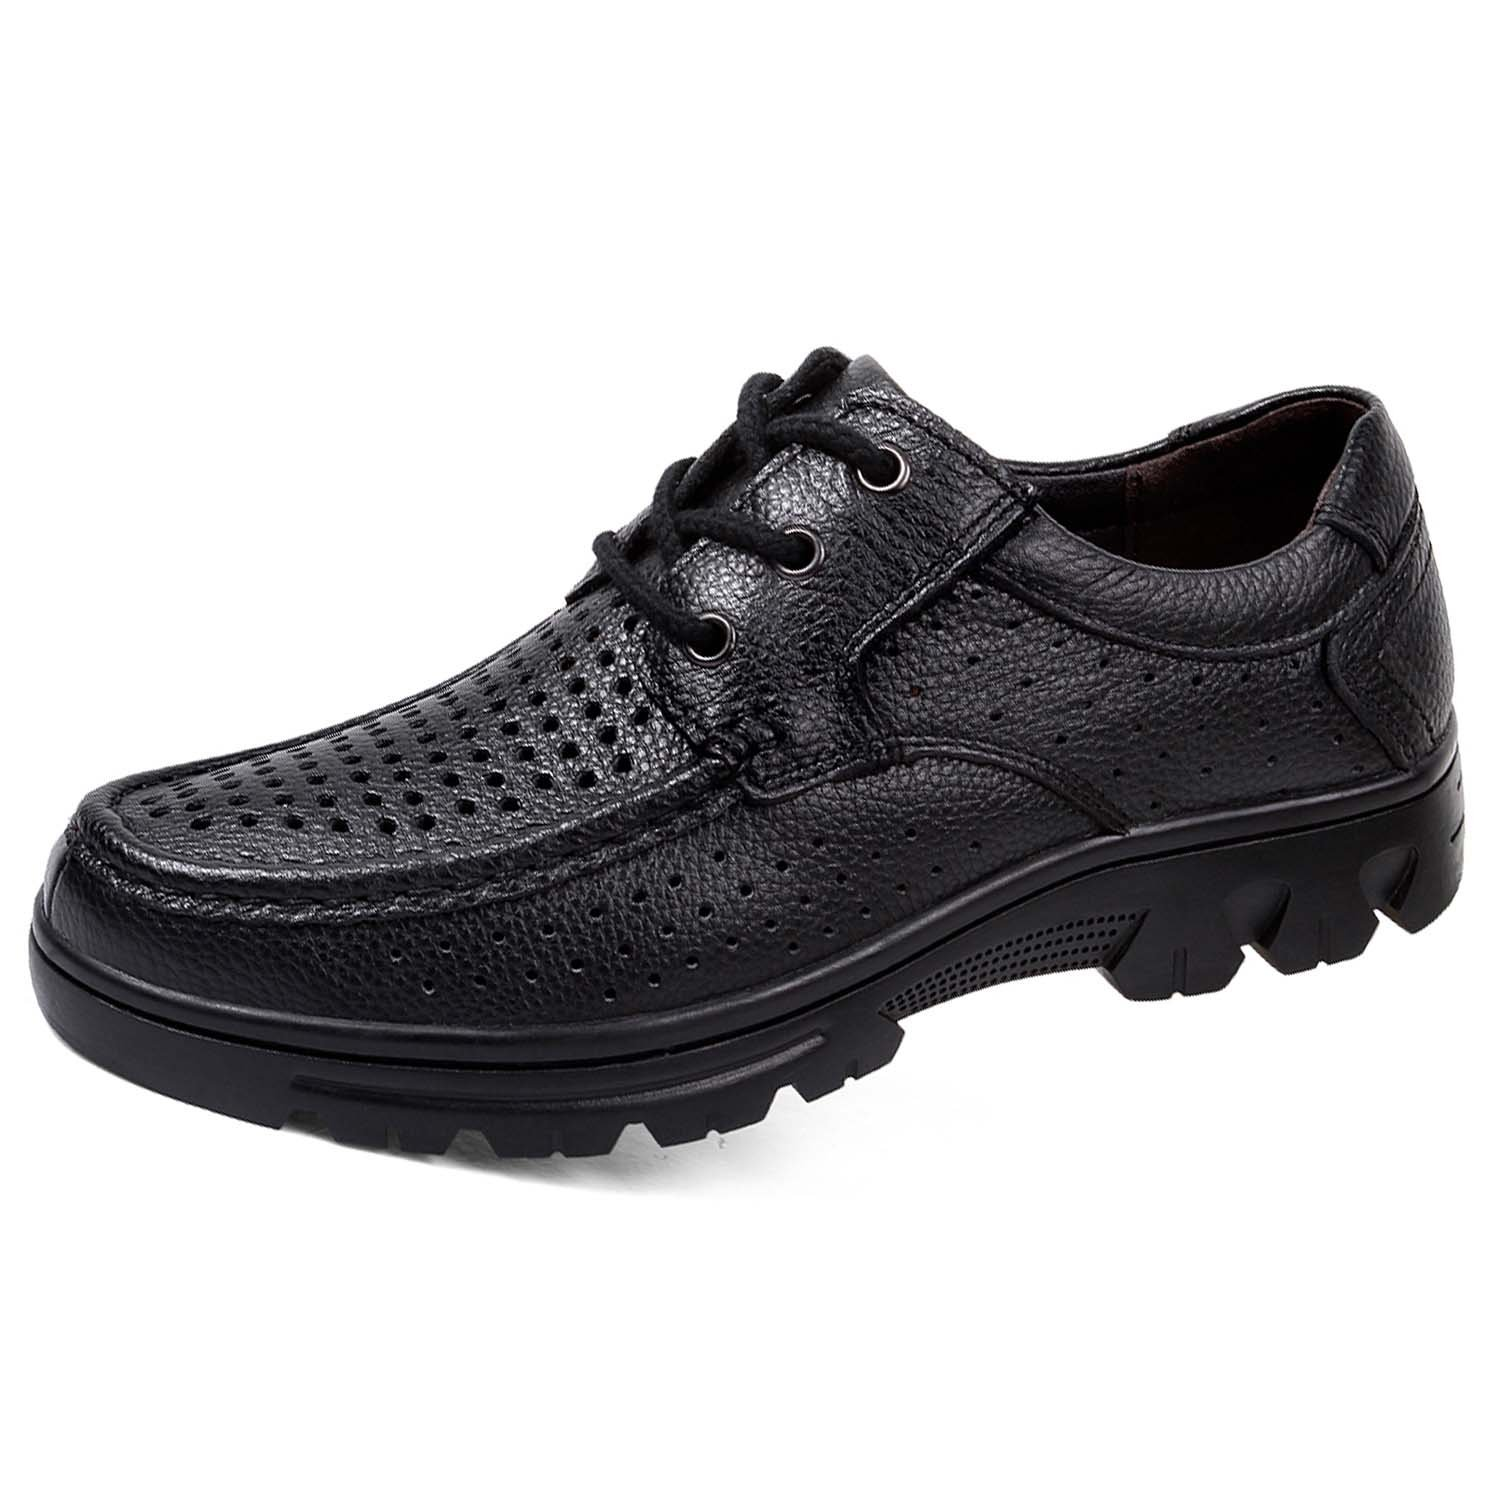 Men's Oxford Breathable Mesh Dress Shoes Lace-up Formal Modern Classic Business Genuine Cow Leather Chelsea Black 47